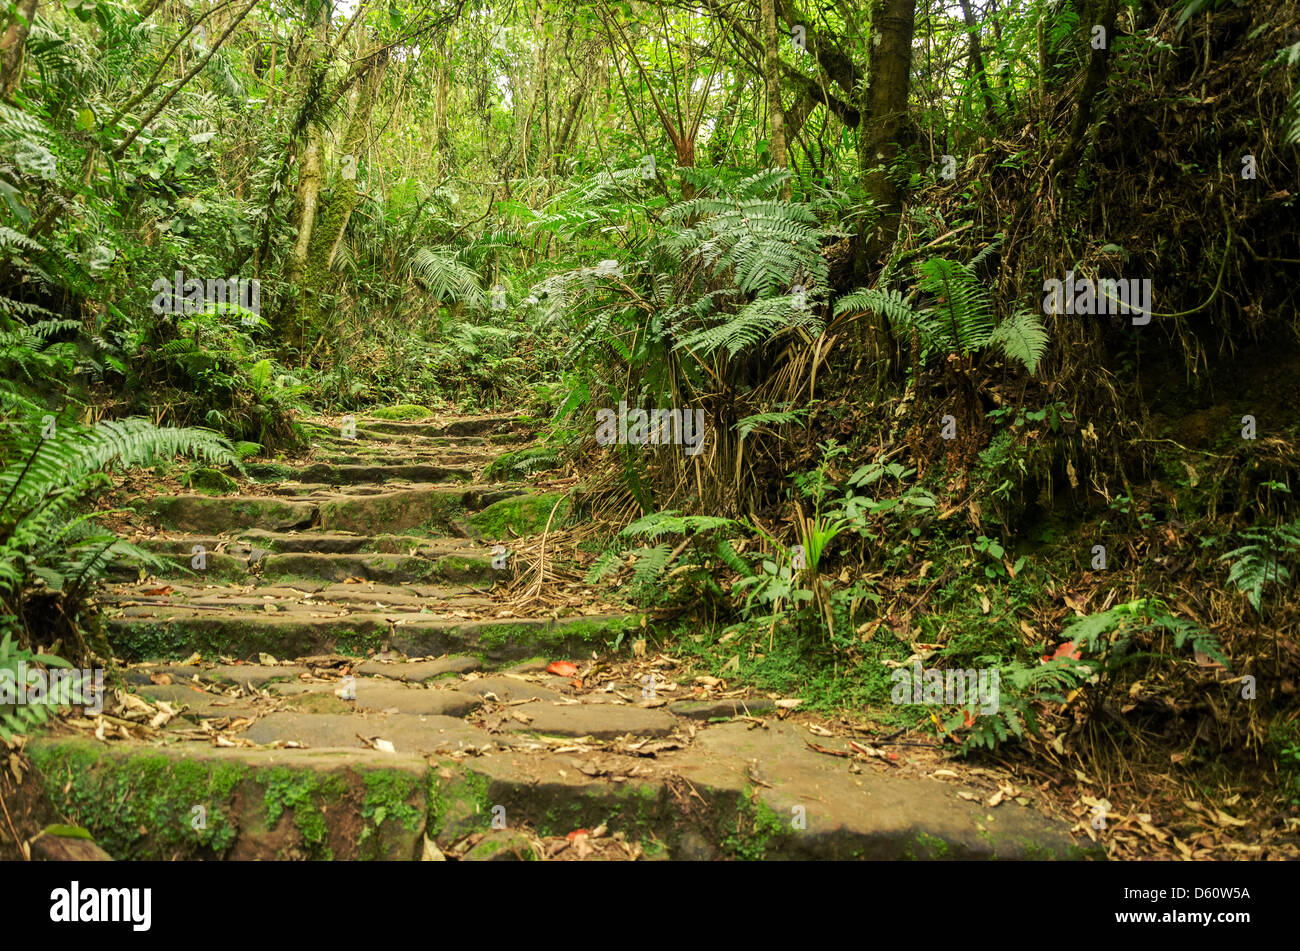 Stone path in green highland cloud forest - Stock Image